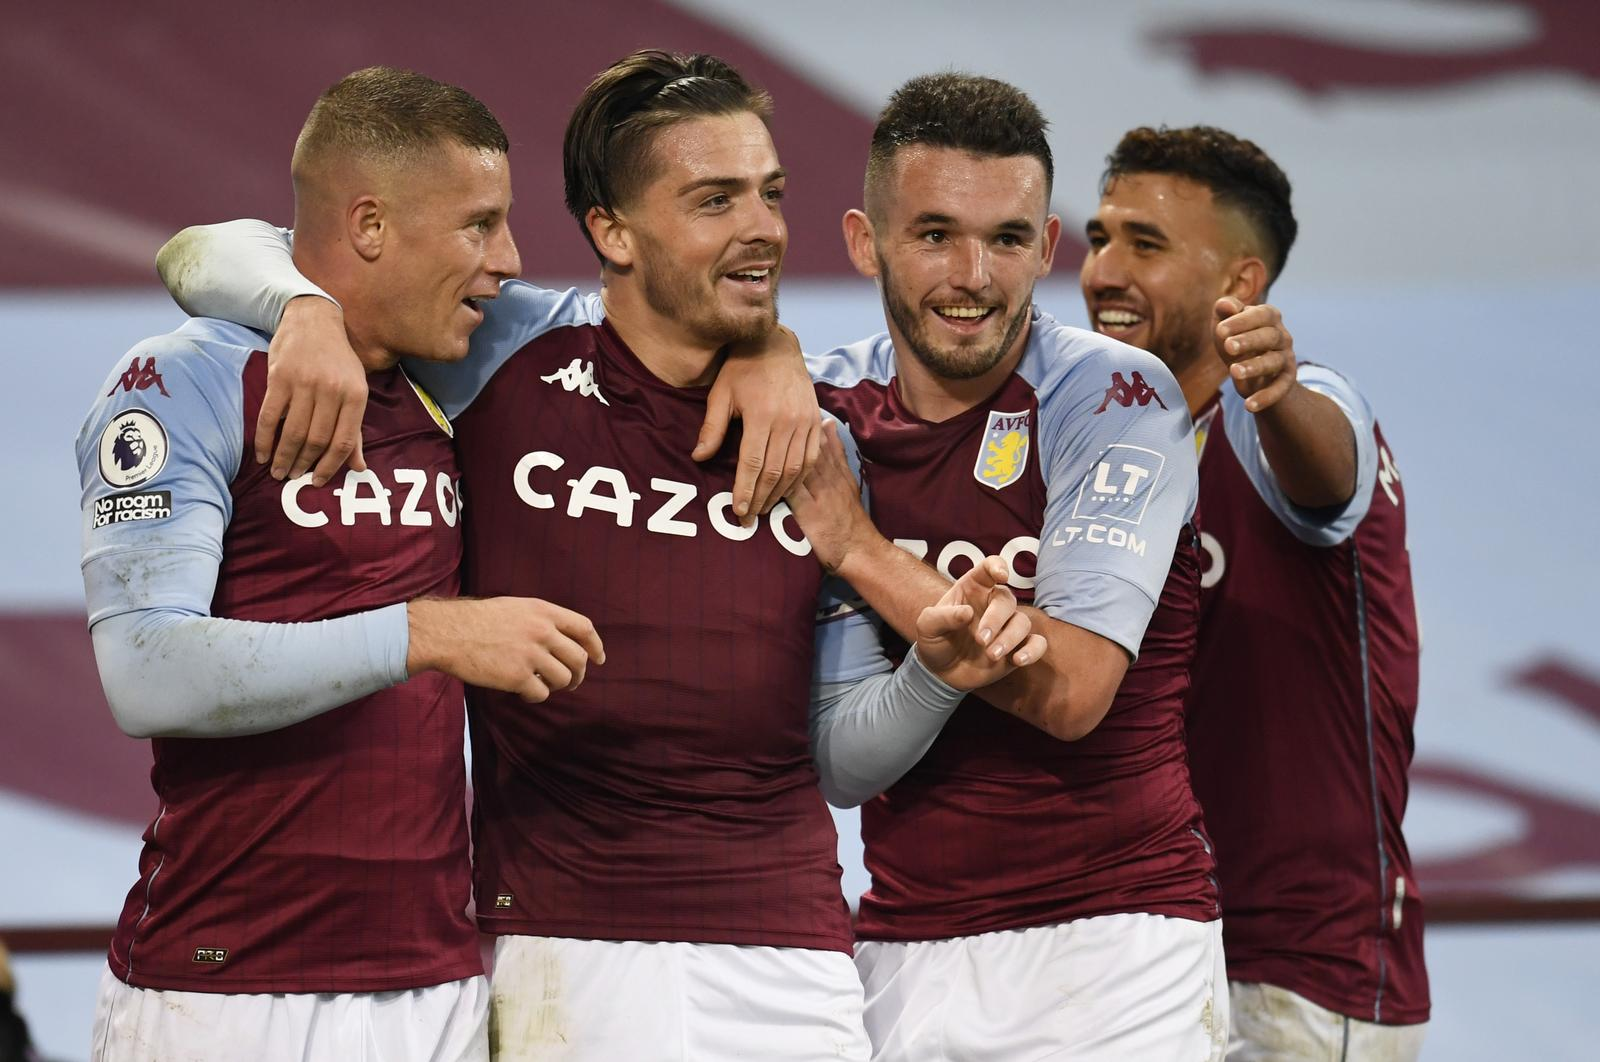 Aston Villa's Jack Grealish celebrates scoring their sixth goal with Ross Barkley, John McGinn and Trezeguet - Premier League - Aston Villa v Liverpool - Villa Park, Birmingham, Britain - October 4, 2020. Photo: Reuters